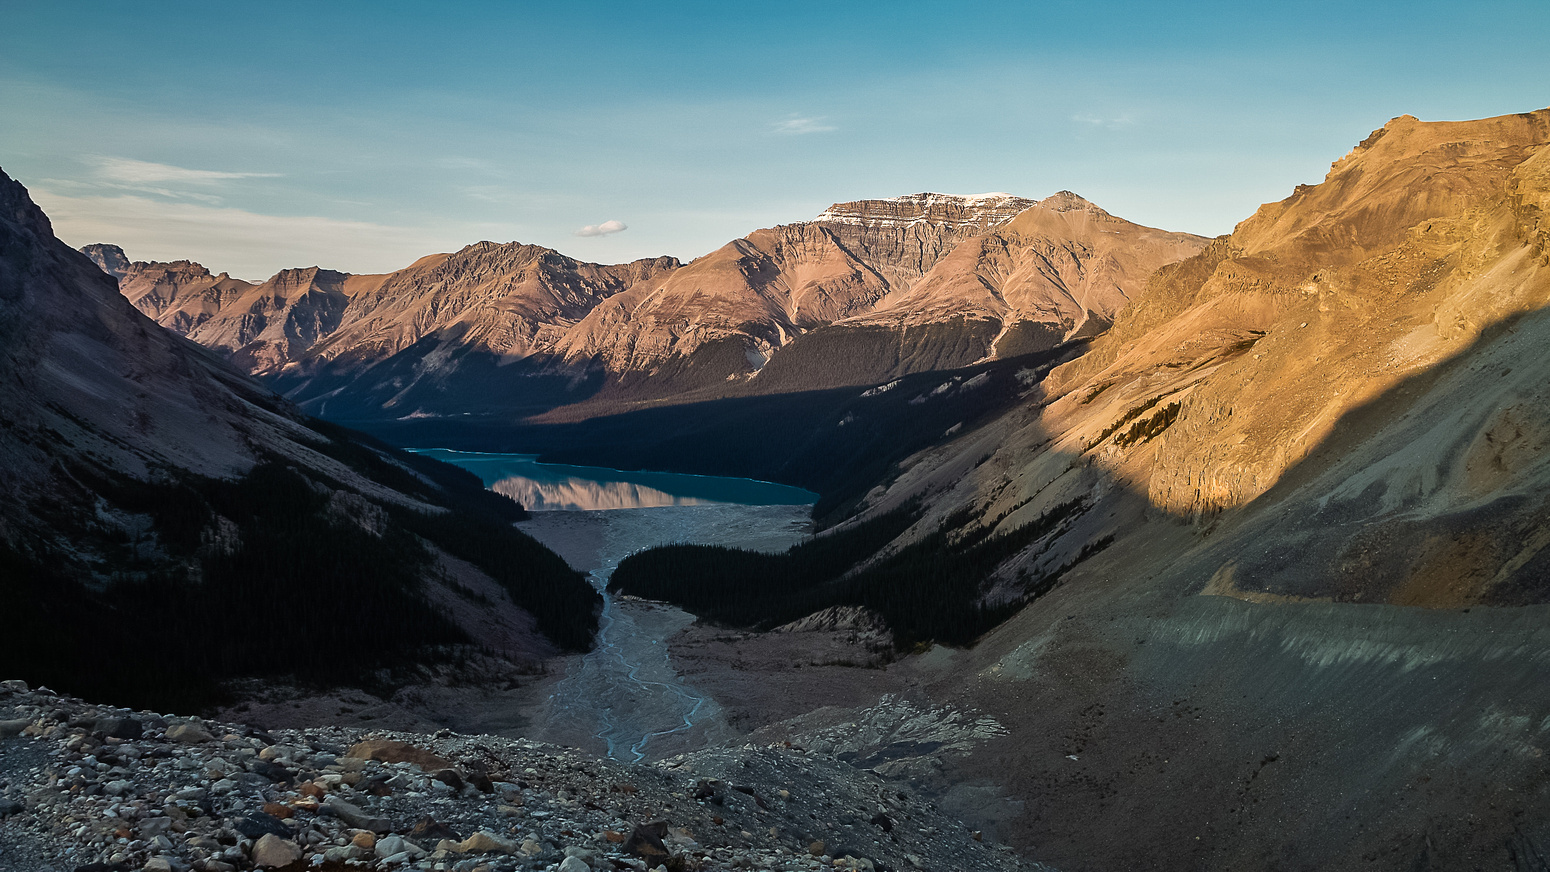 Looking down the moraine towards Peyto Lake - note the setting sun!